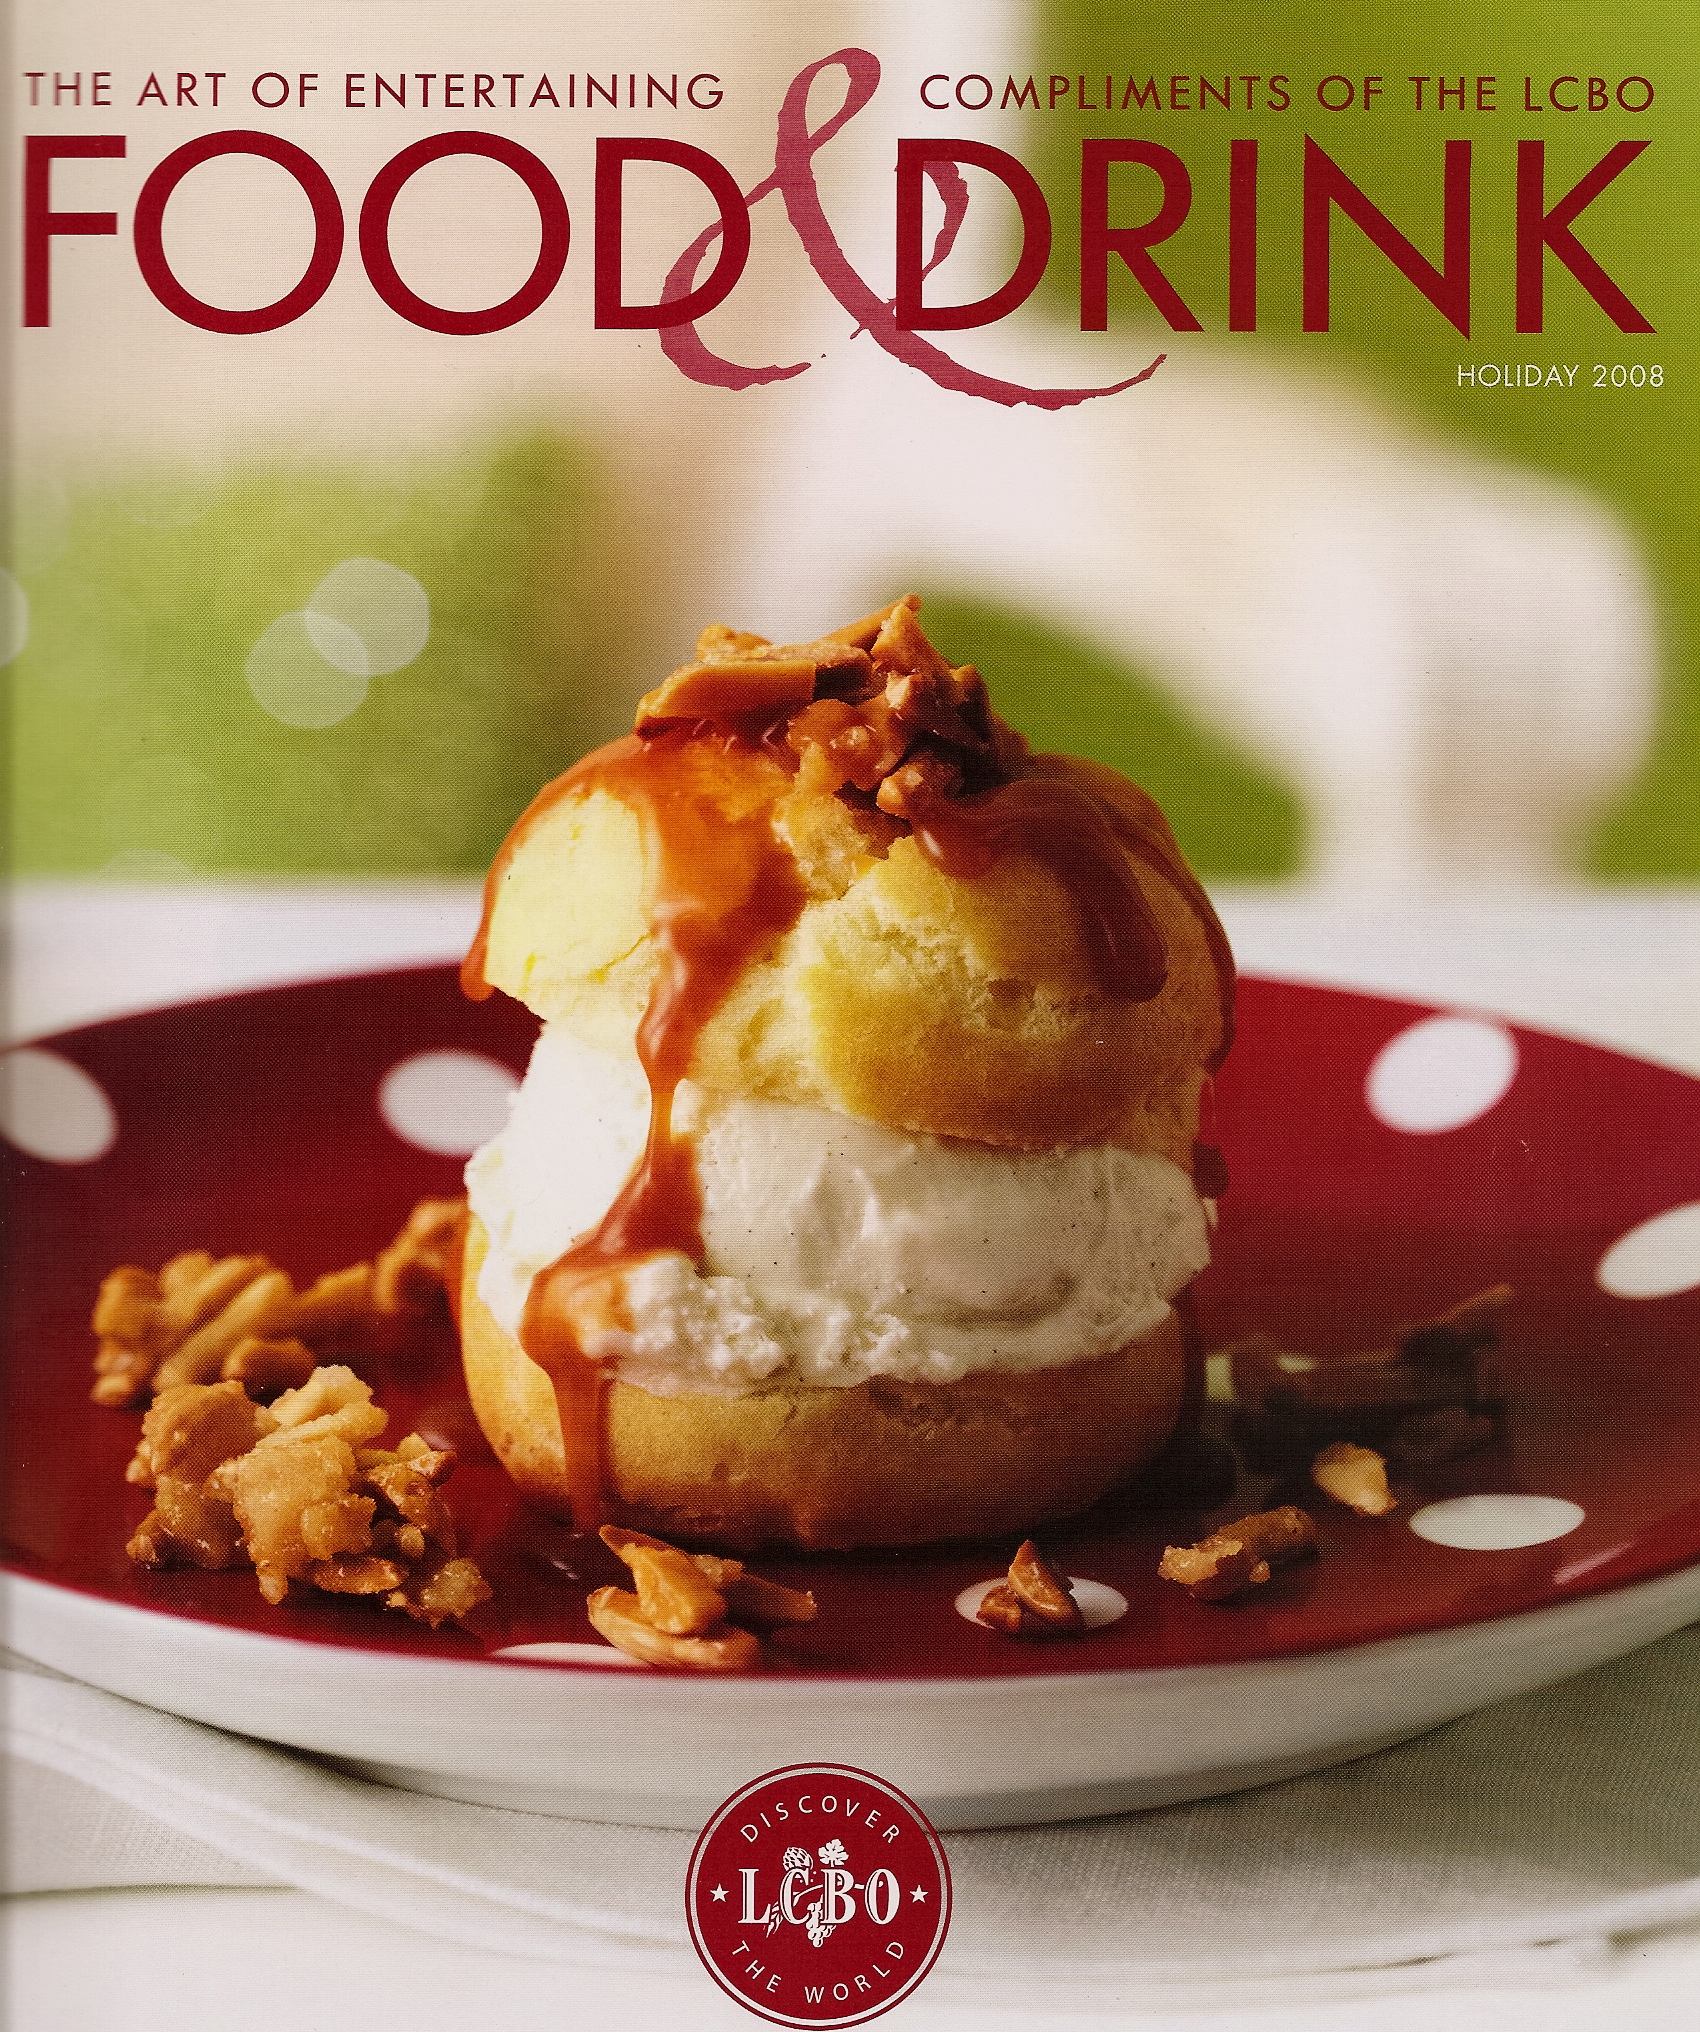 food drink magazine holiday 2008 christmas lcbo issue countdown inspiration source